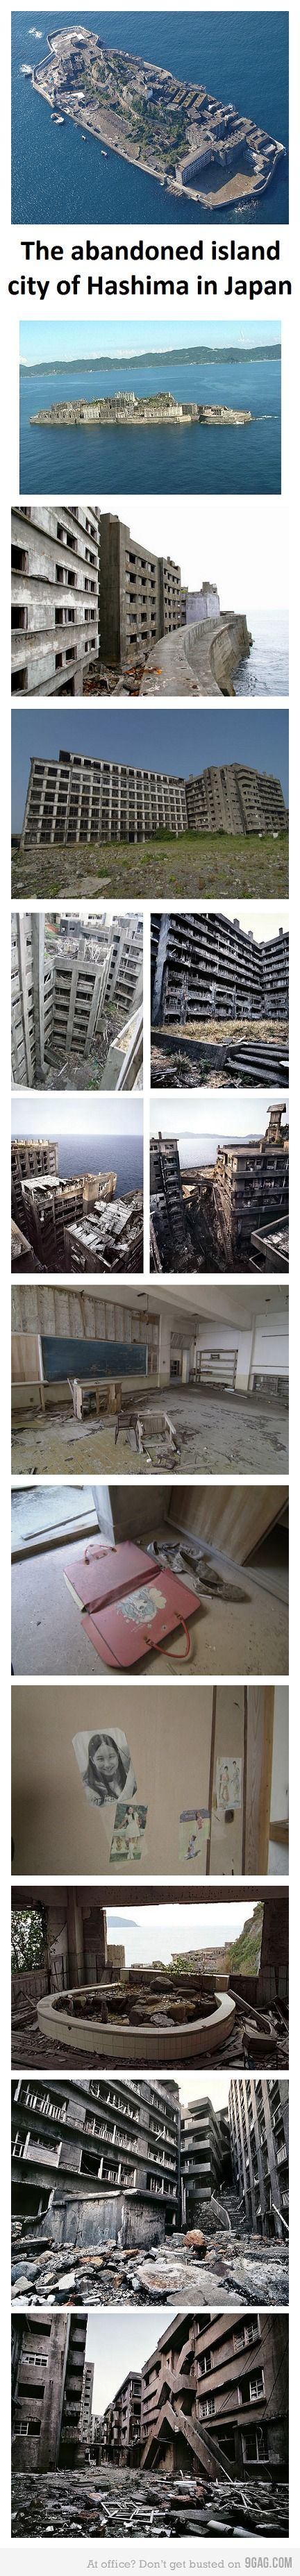 The abandoned island city of Hashima in Japan